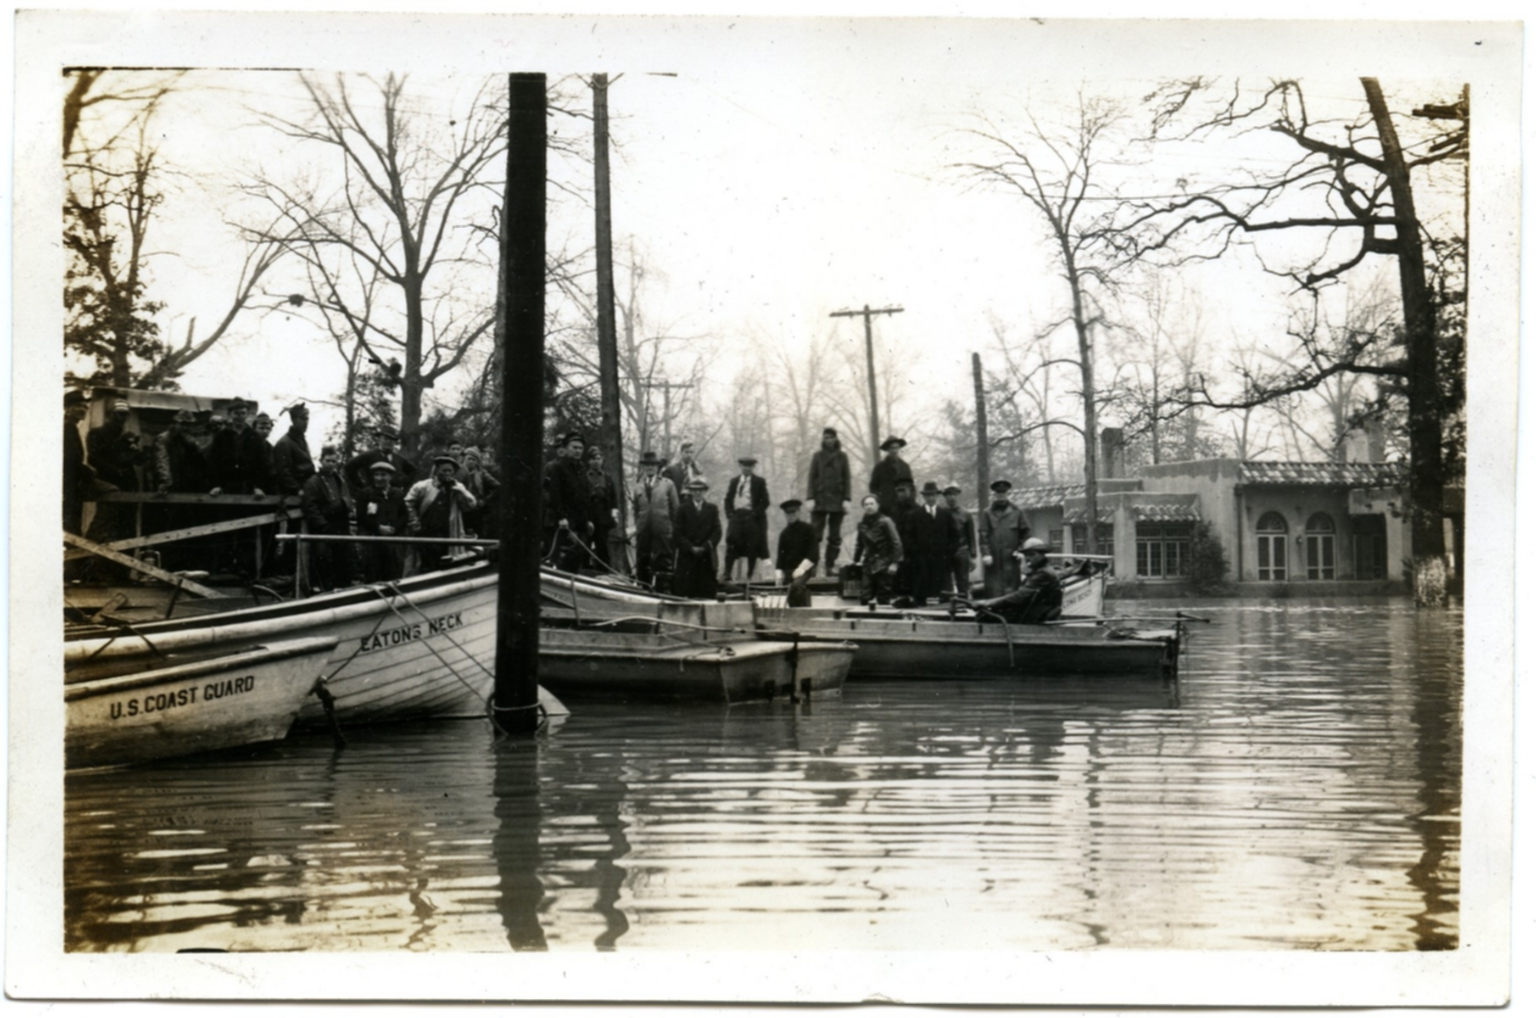 Coast Guard Rescue during the '37 flood.